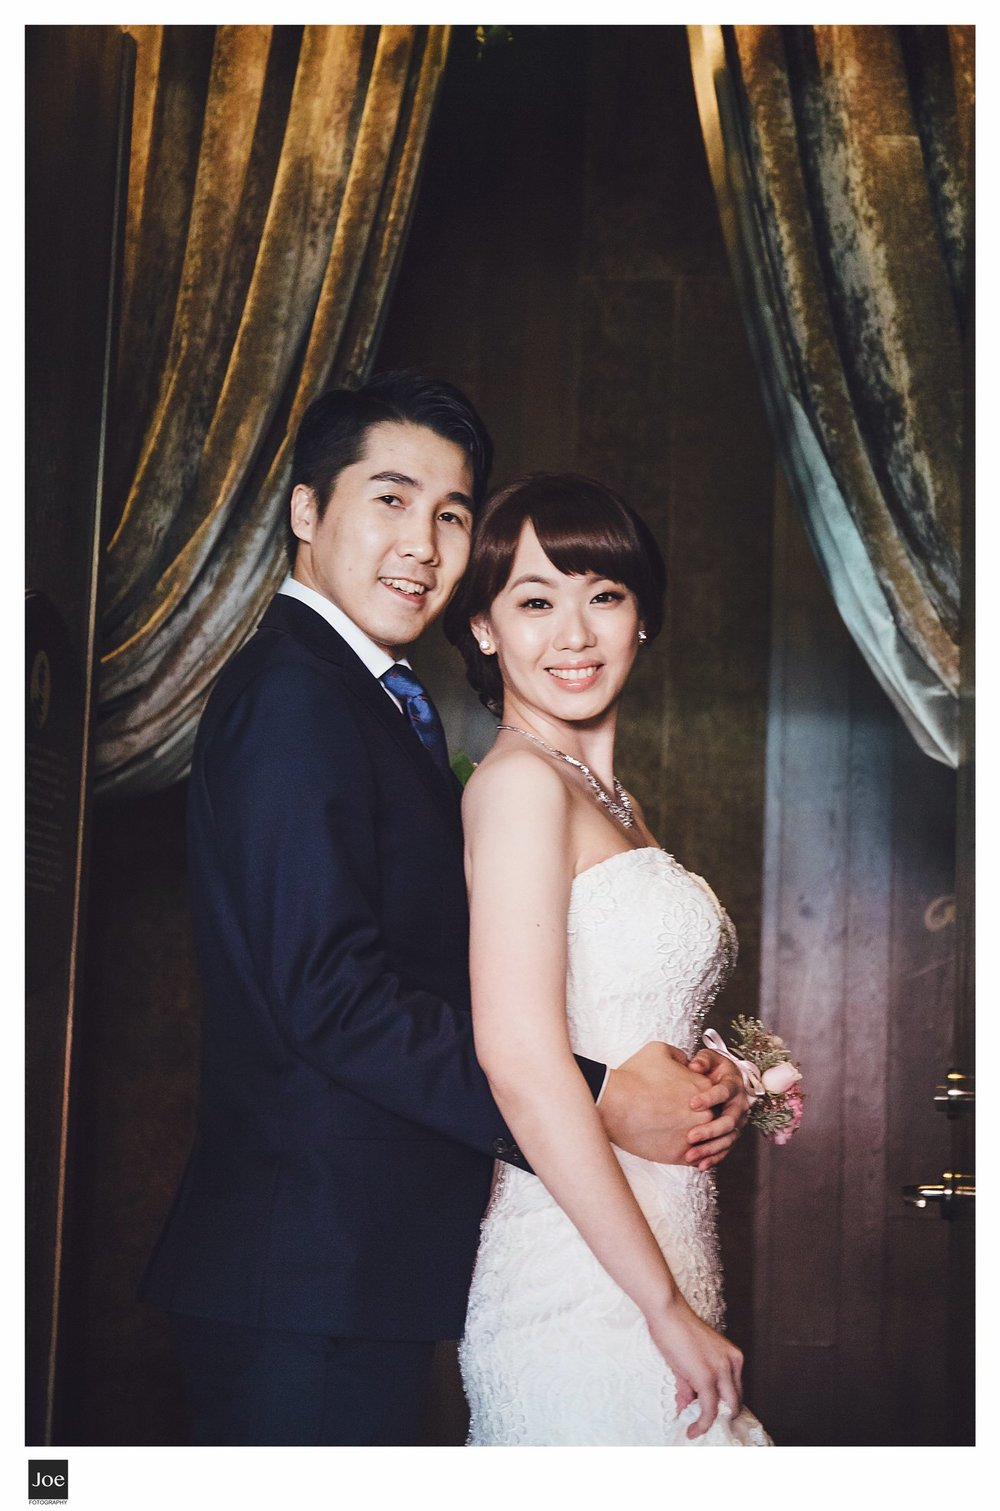 joe-fotography-wedding-photo-palais-de-chine-hotel-013.jpg